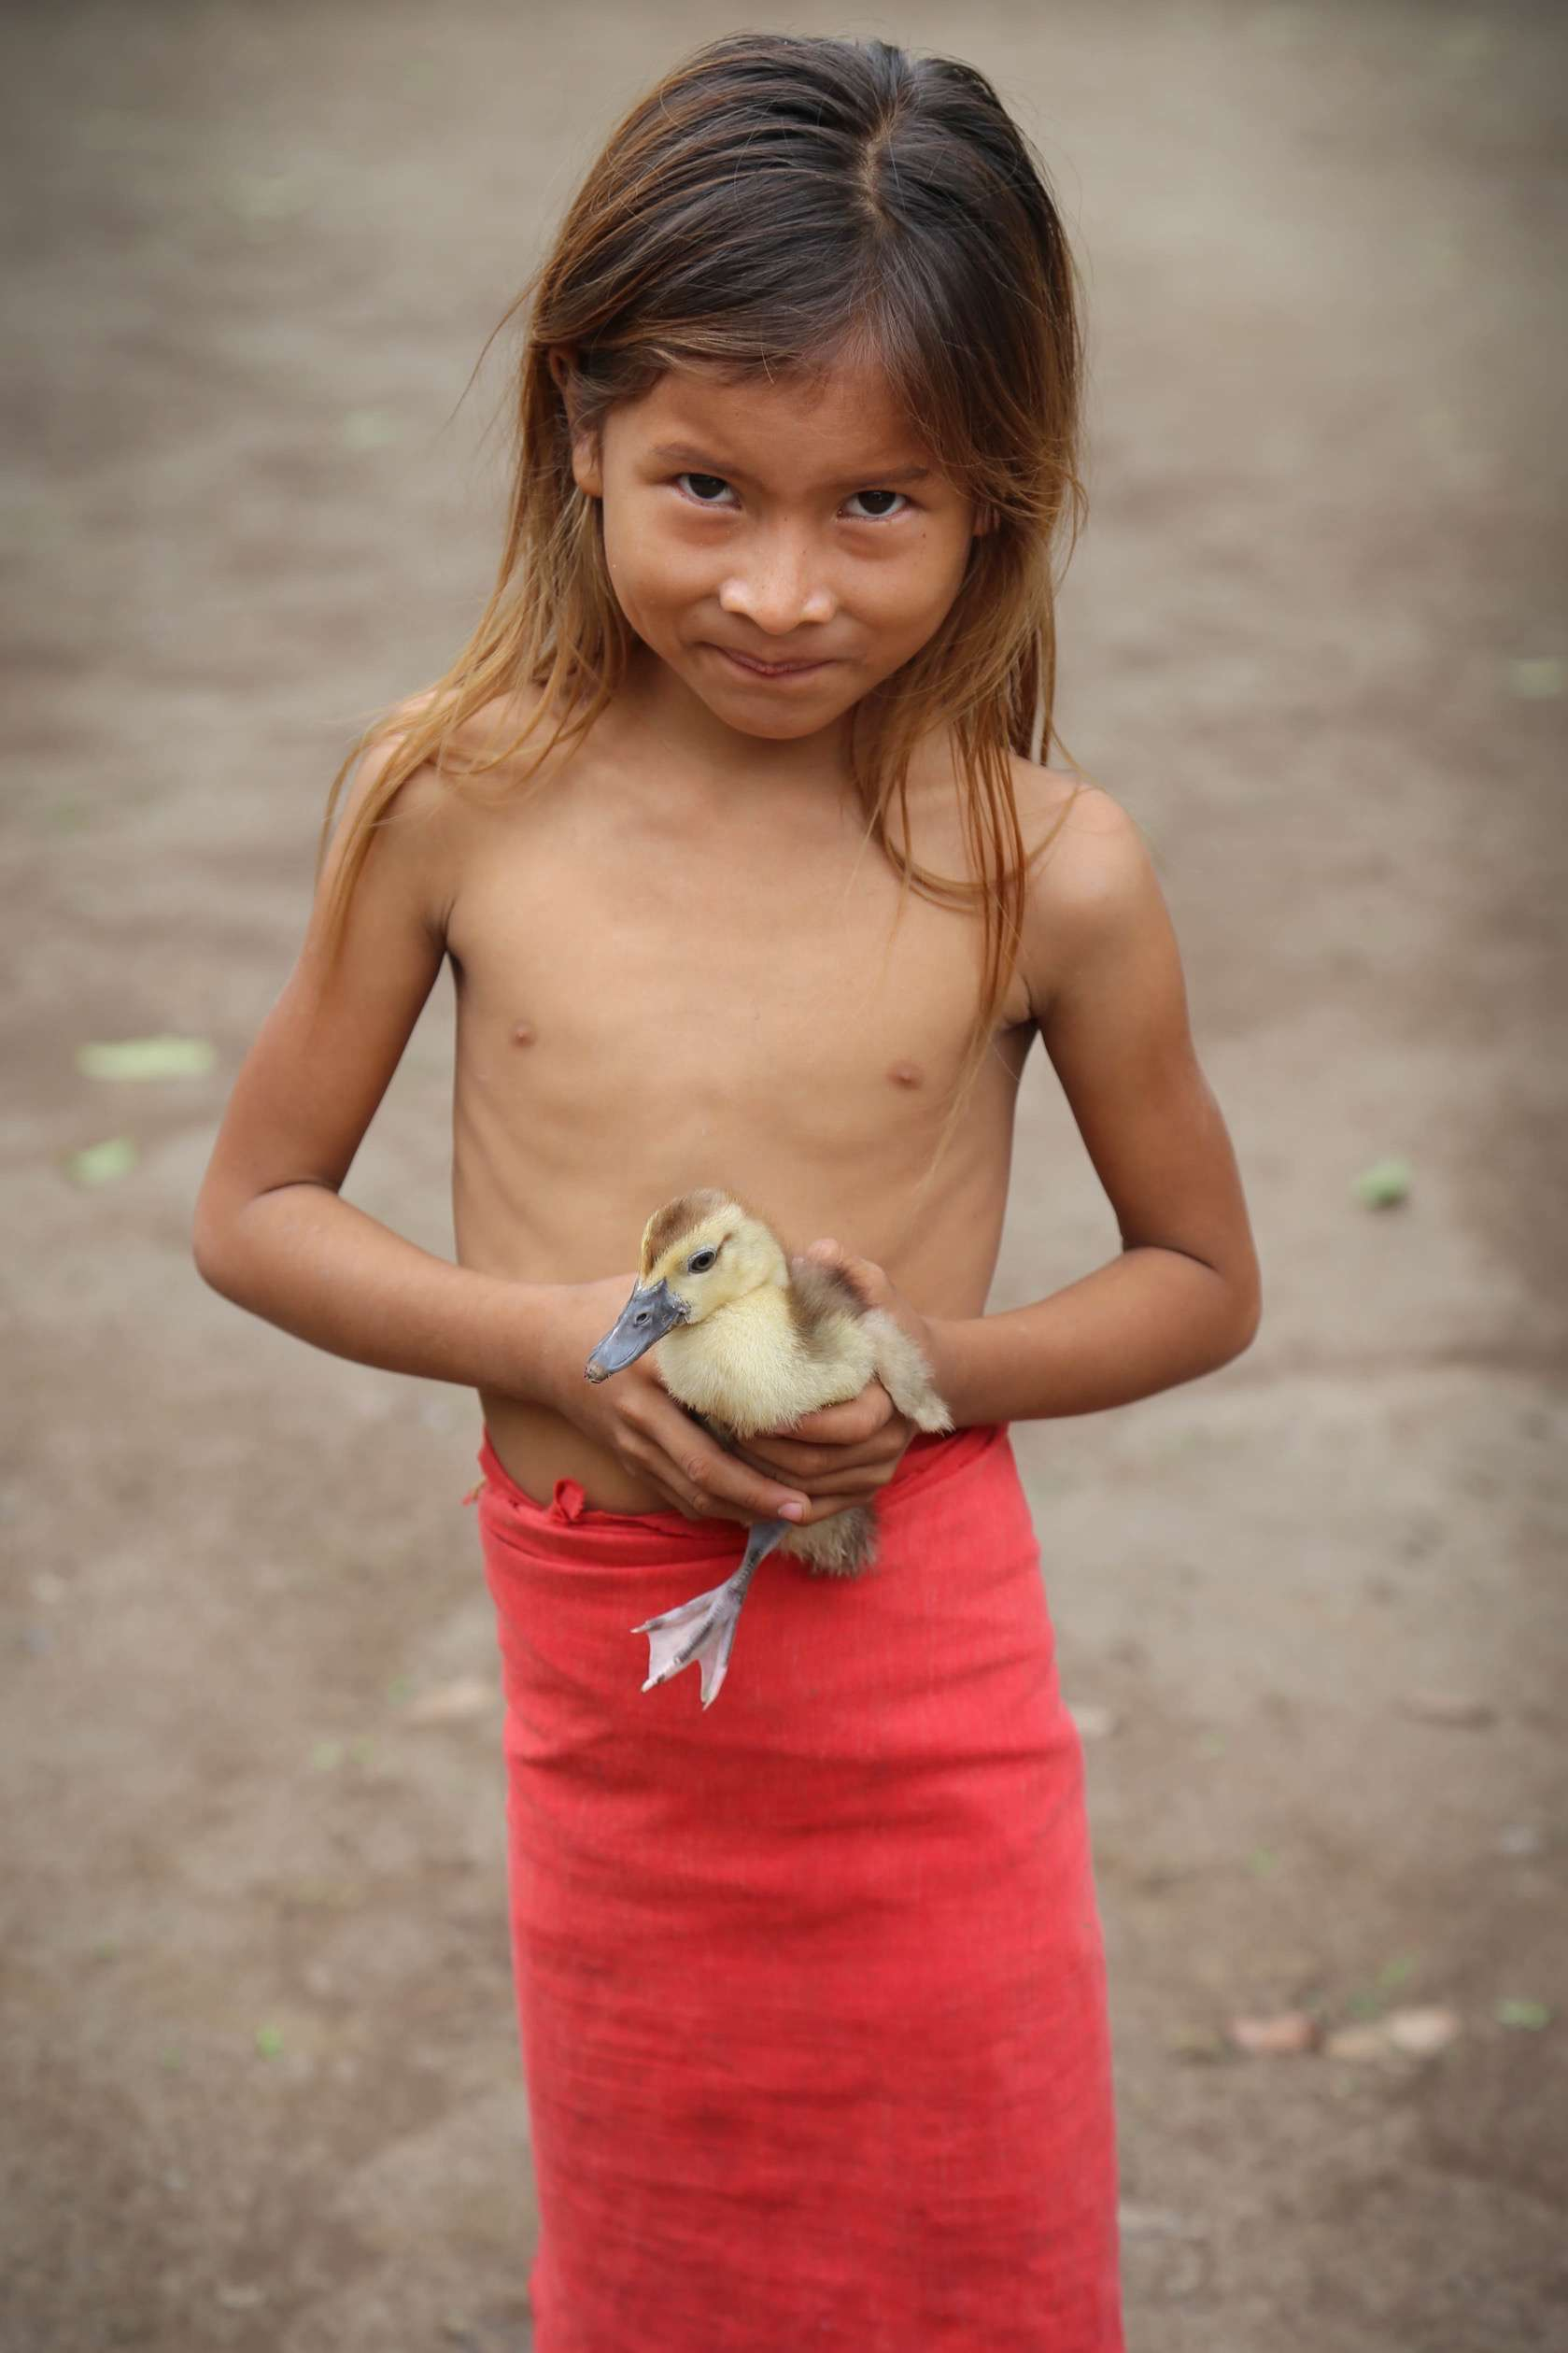 This little girl shyly shows off her baby duckling.